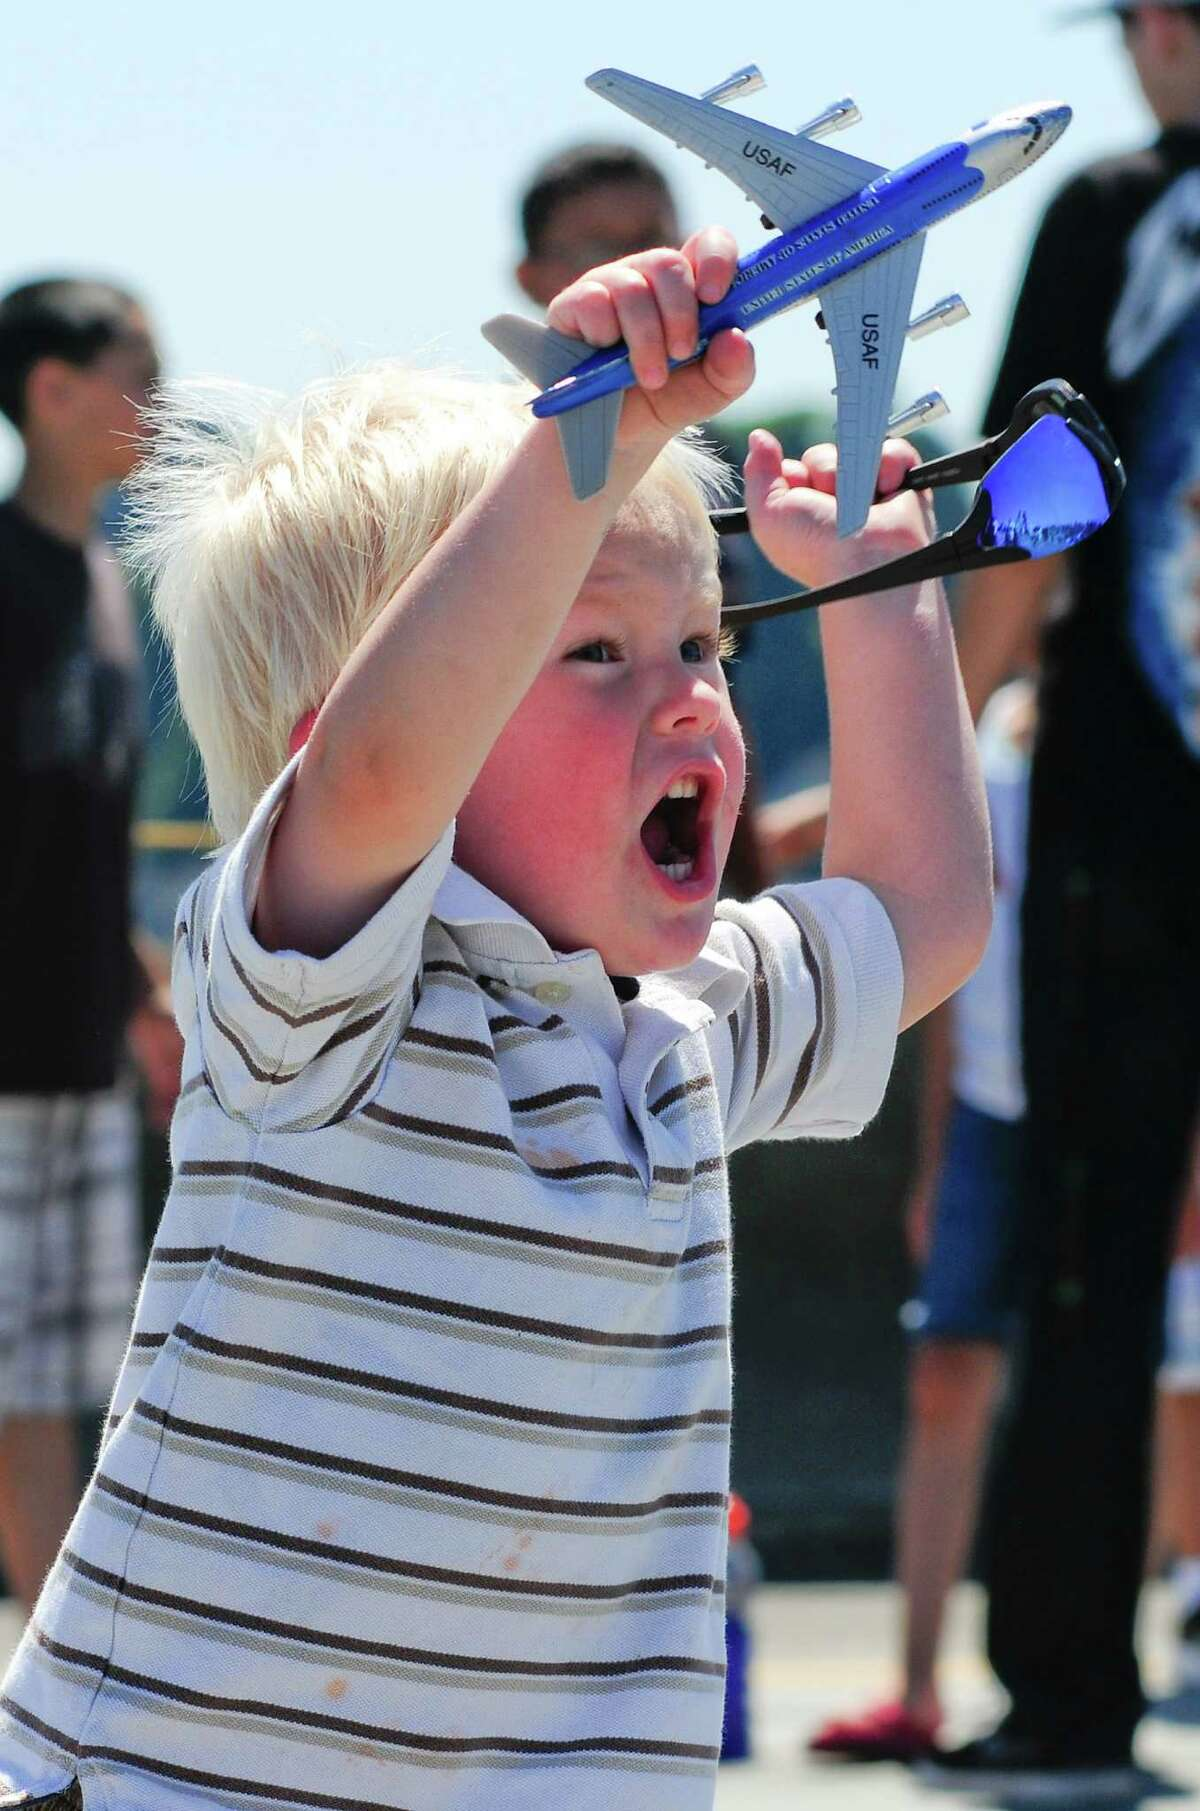 Gavin Ellis, 2, gets enthusiastic about his model plane while watching a Blue Angels demonstration over Lake Washington on a sunny Friday, August 3, 2012. The team will perform again on Saturday and Sunday as part of Seattle's annual Seafair activities.